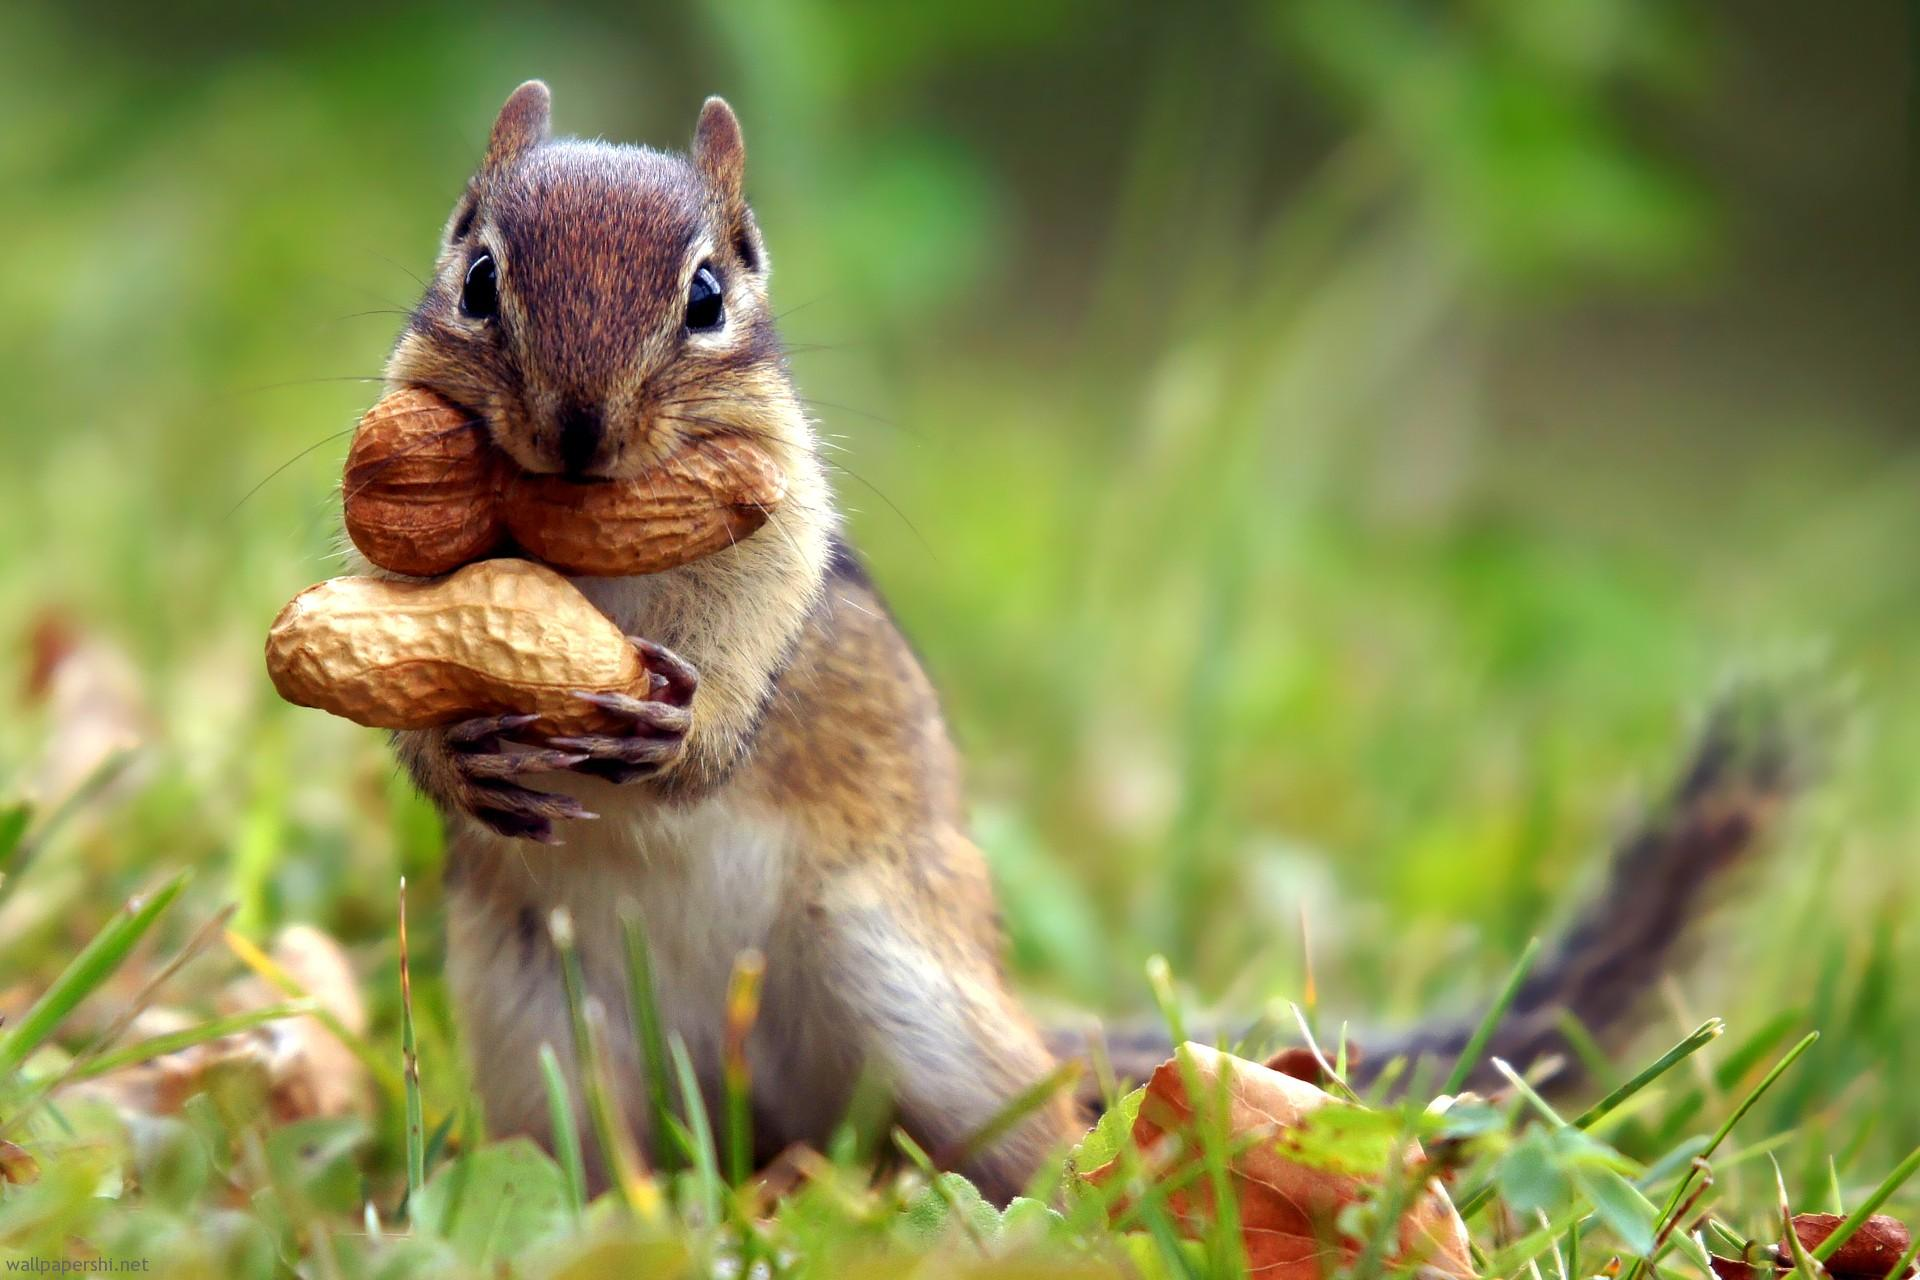 squirrel-nut-cute-animal-nature-grass-1920x1280